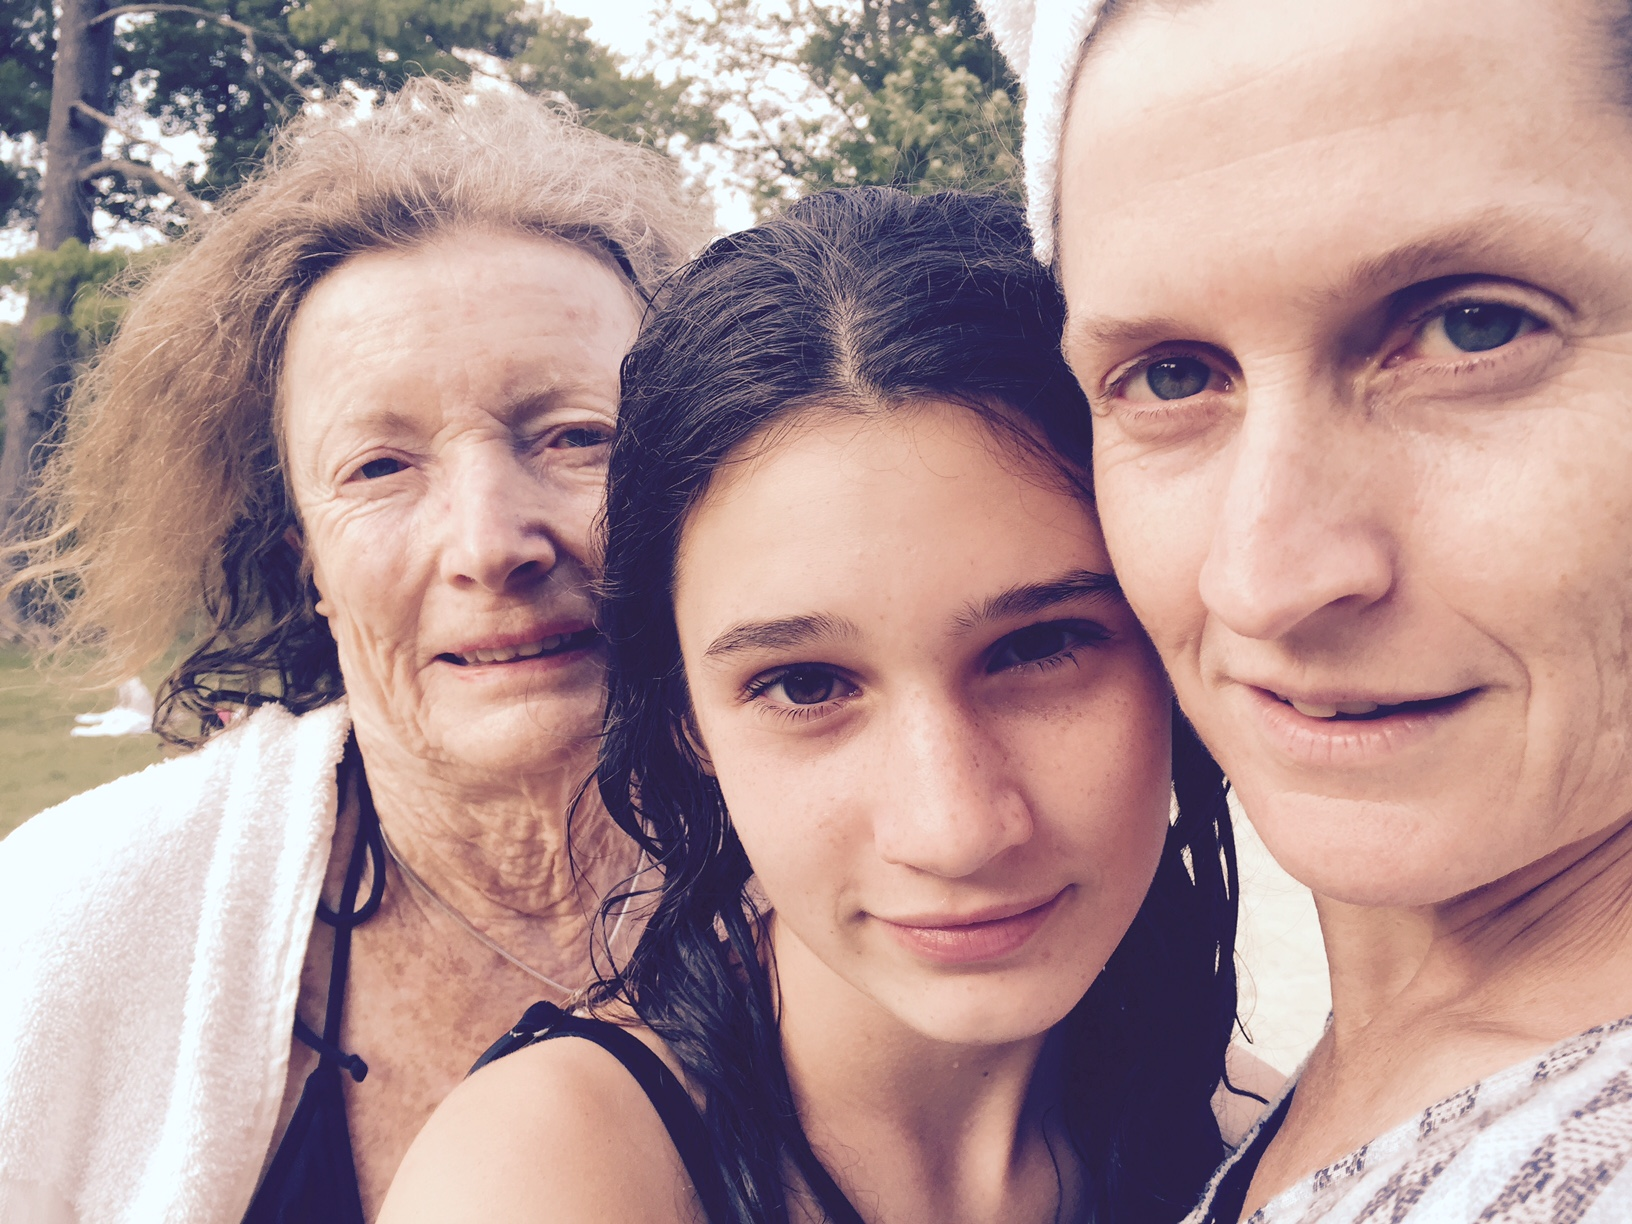 I often bring the whole family. Here is Mom, Lui (my daugher), and me. Miko (my son) is in the lake. xo